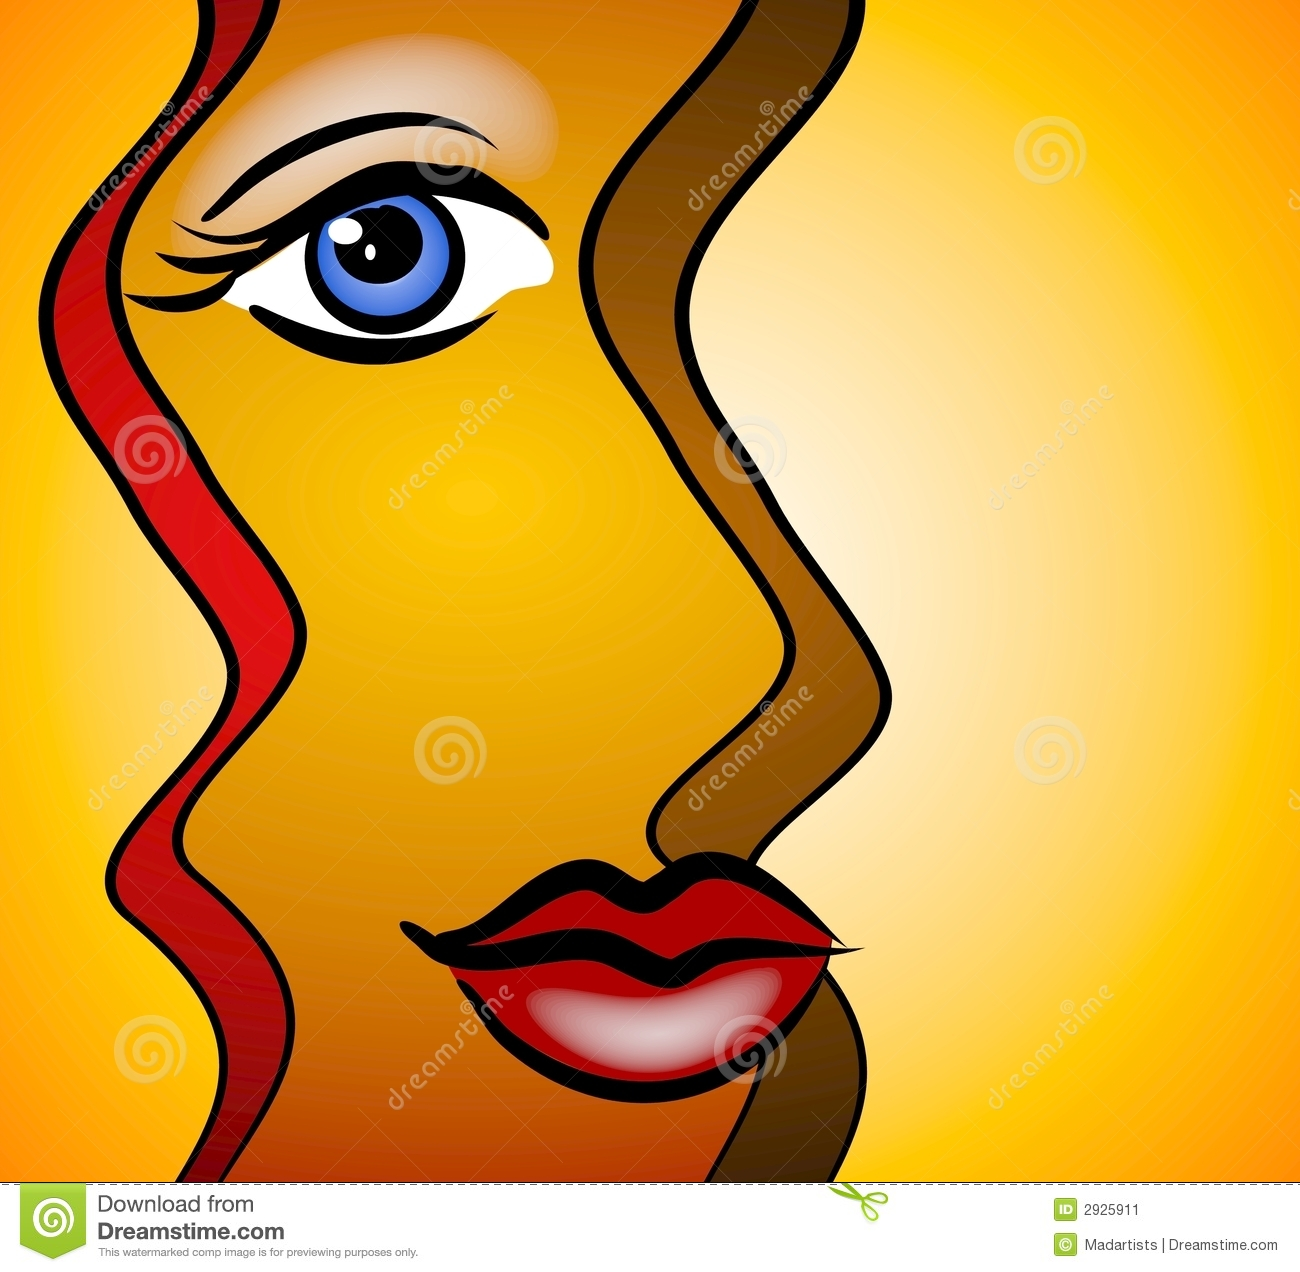 Abstract Face Woman Smiling on Smiling Lips Clip Art